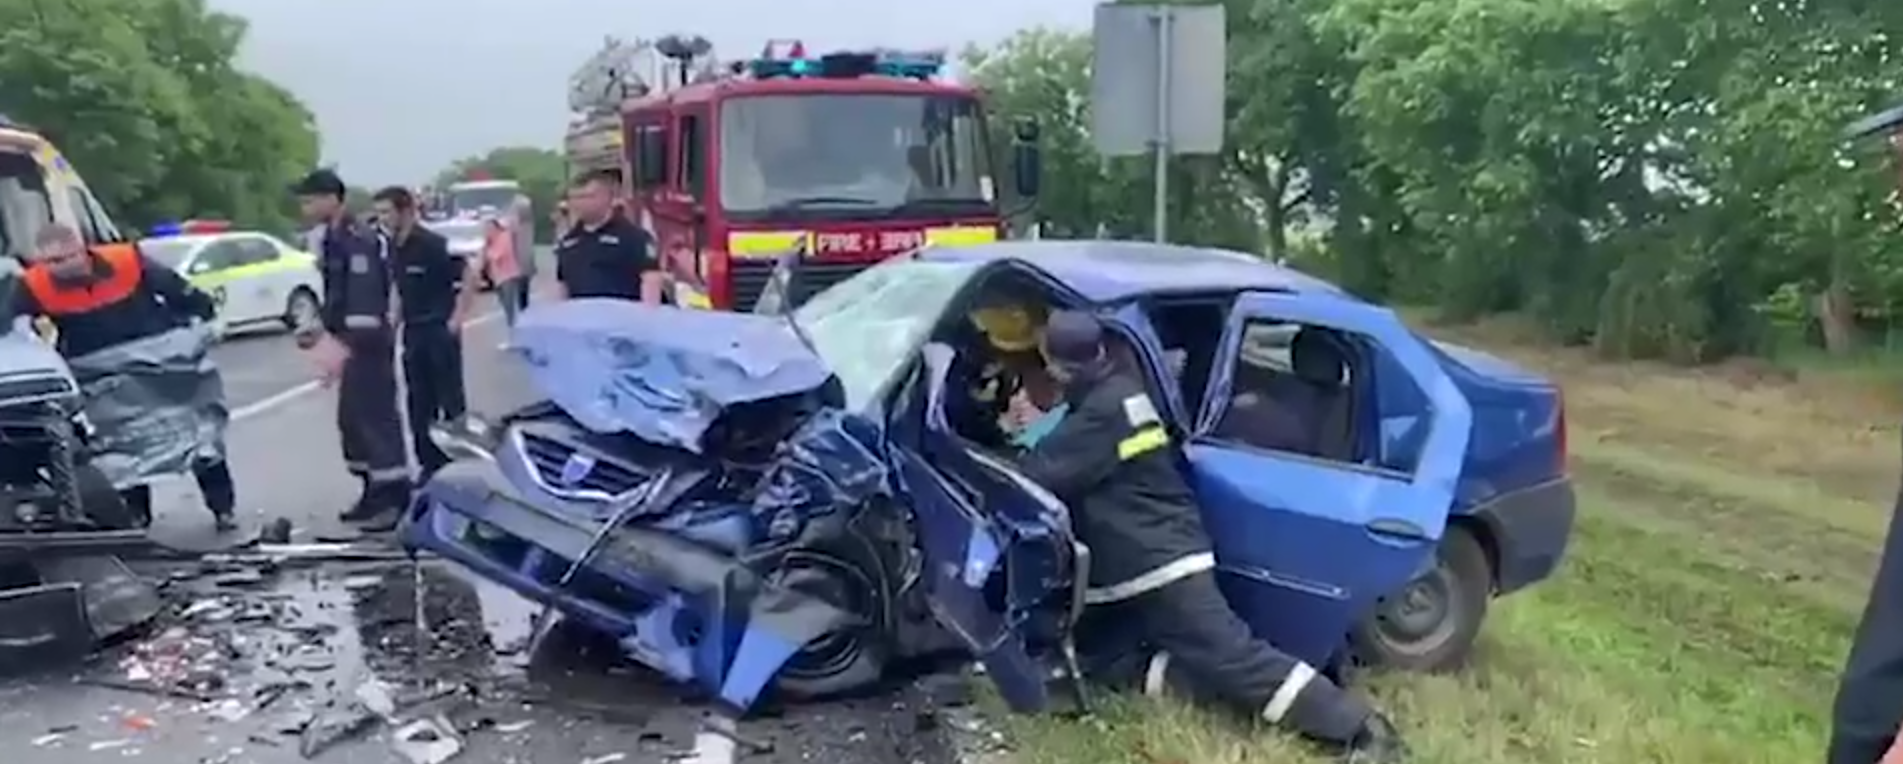 accident rutier, accident gagauzia